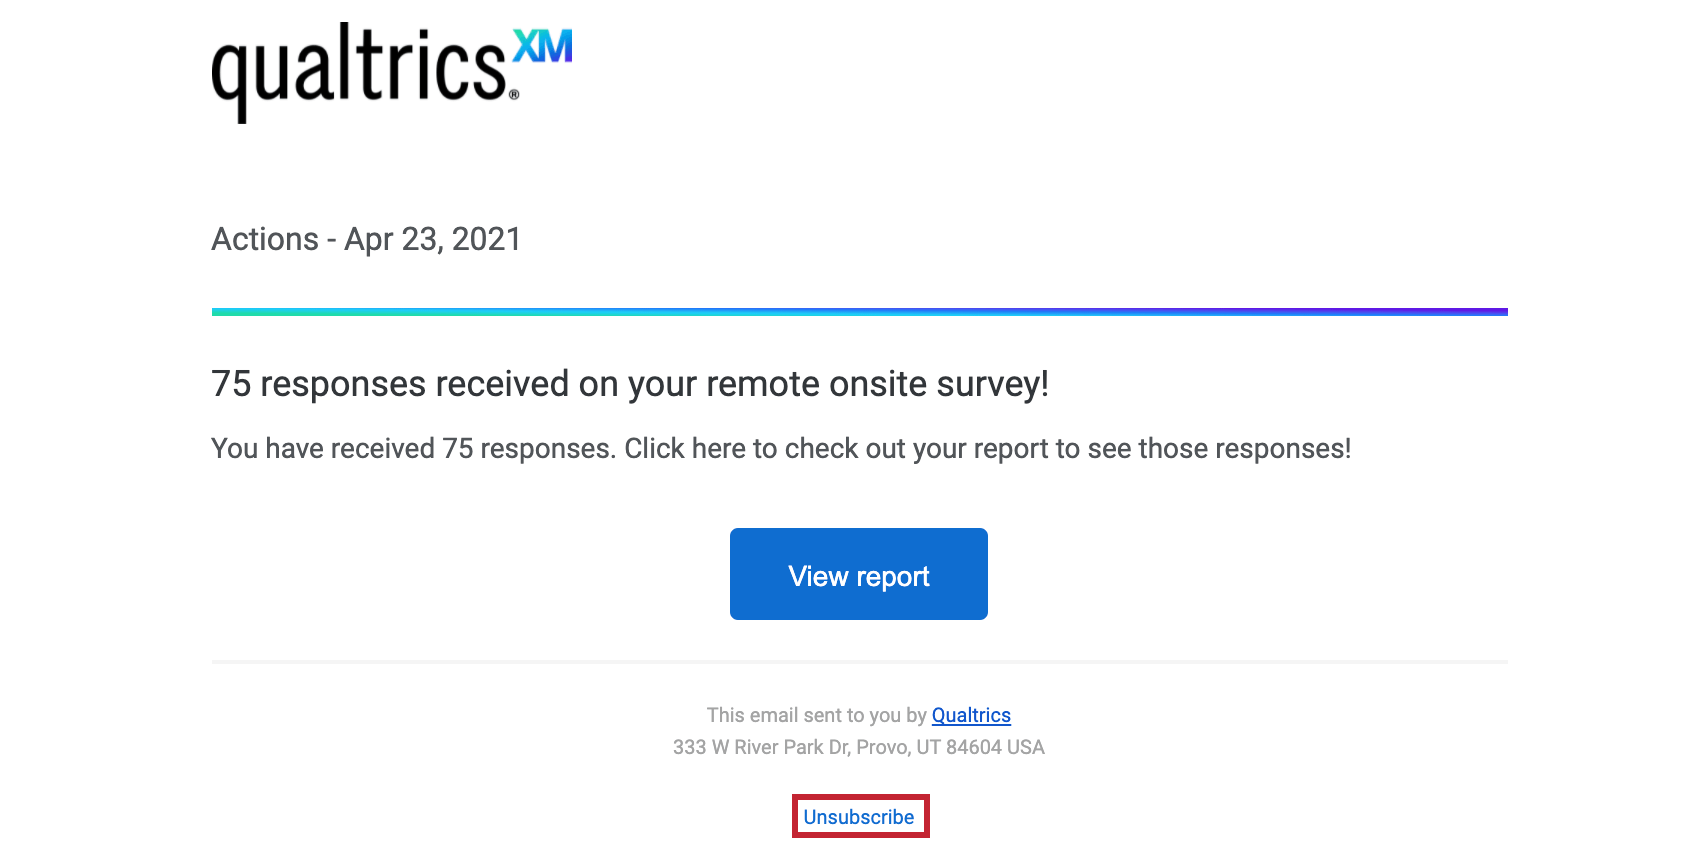 Unsubscribe button at the very bottom of the email